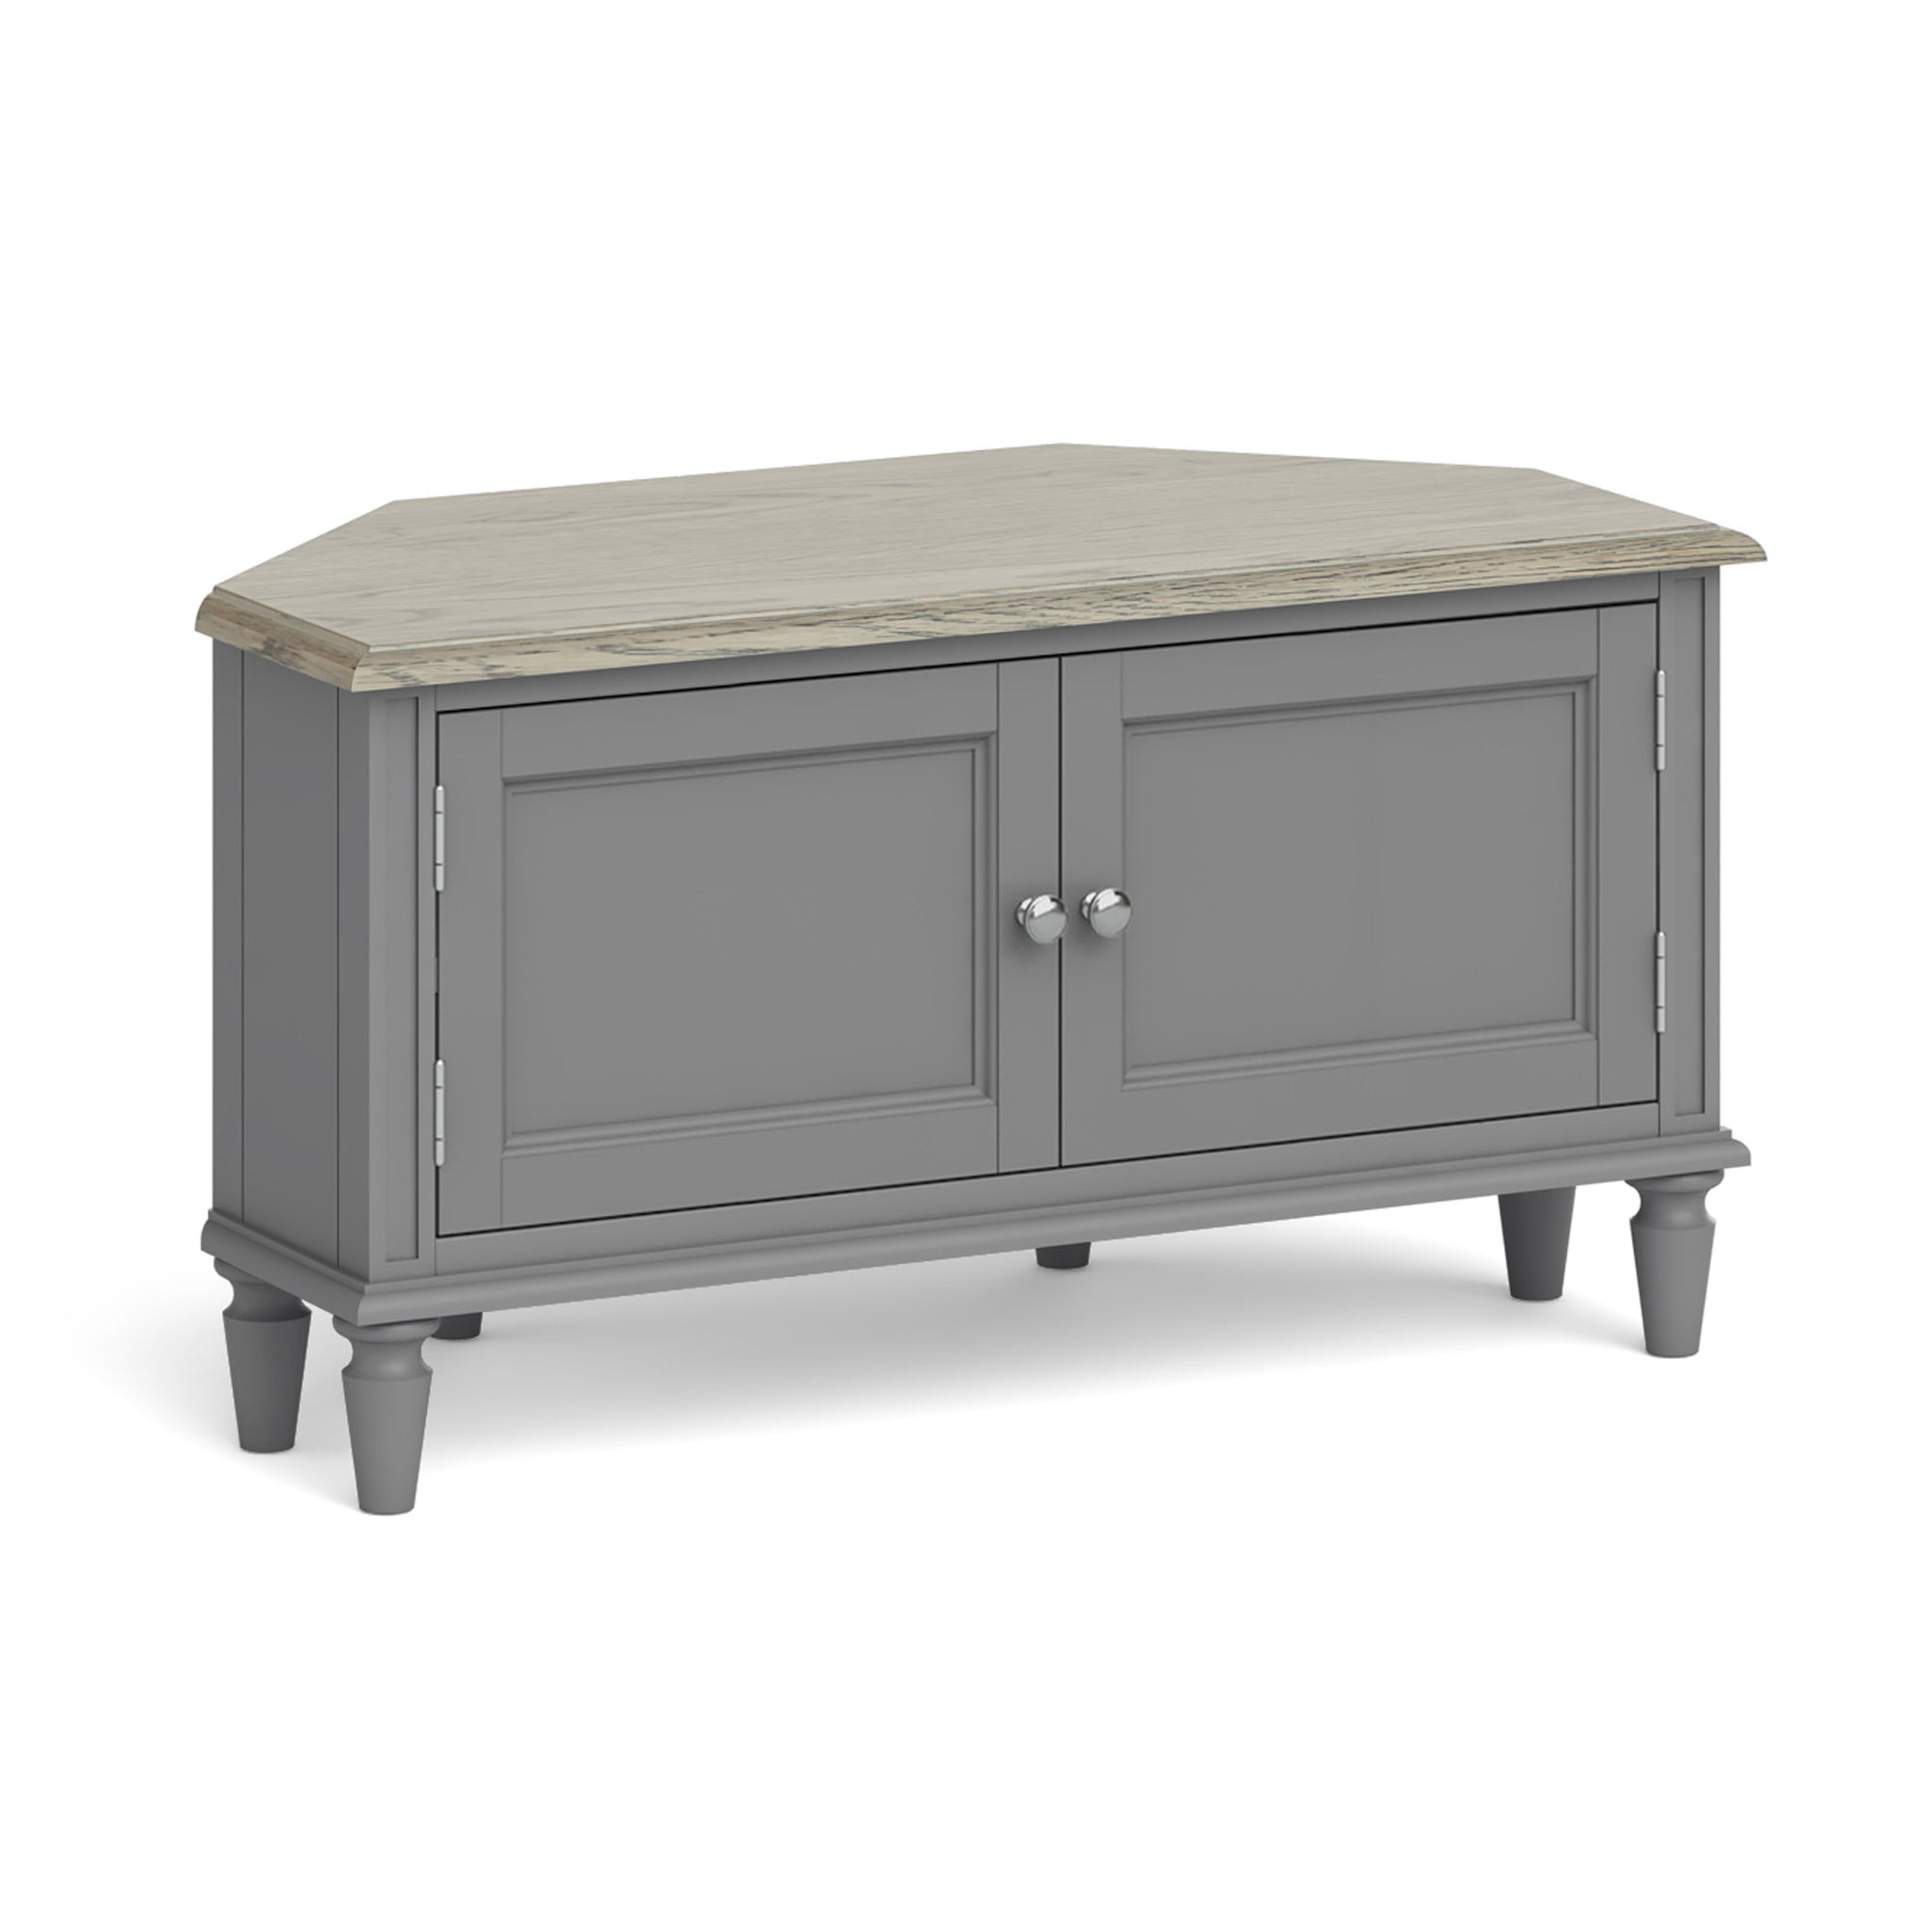 Mulsanne Grey 95cm Corner TV Cupboard Unit by Roseland Furniture